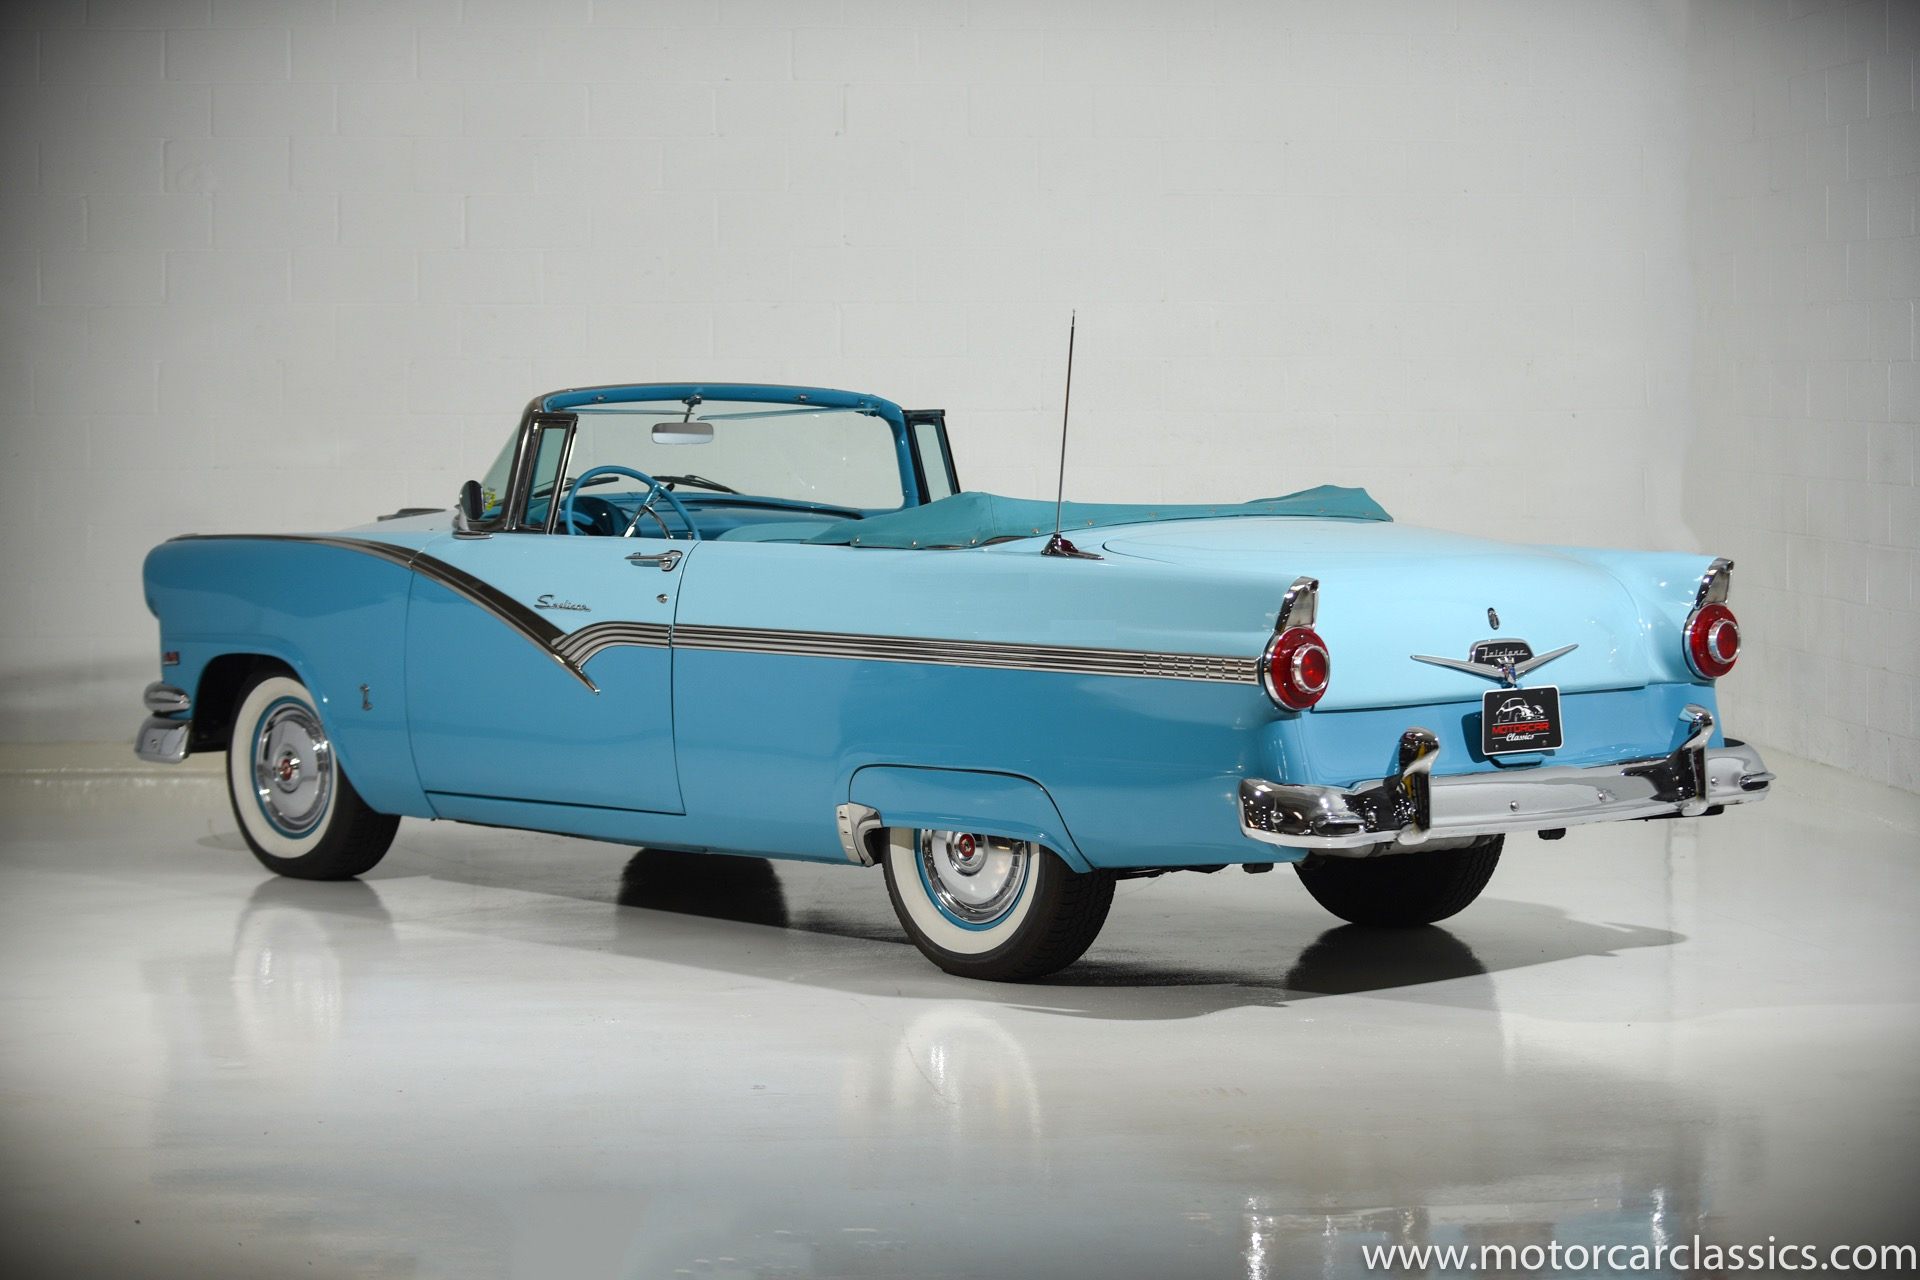 used 1956 ford fairlane sunliner for sale ($42,900) motorcar 1956 Ford Crown Victoria Skyliner 1956 ford fairlane sunliner